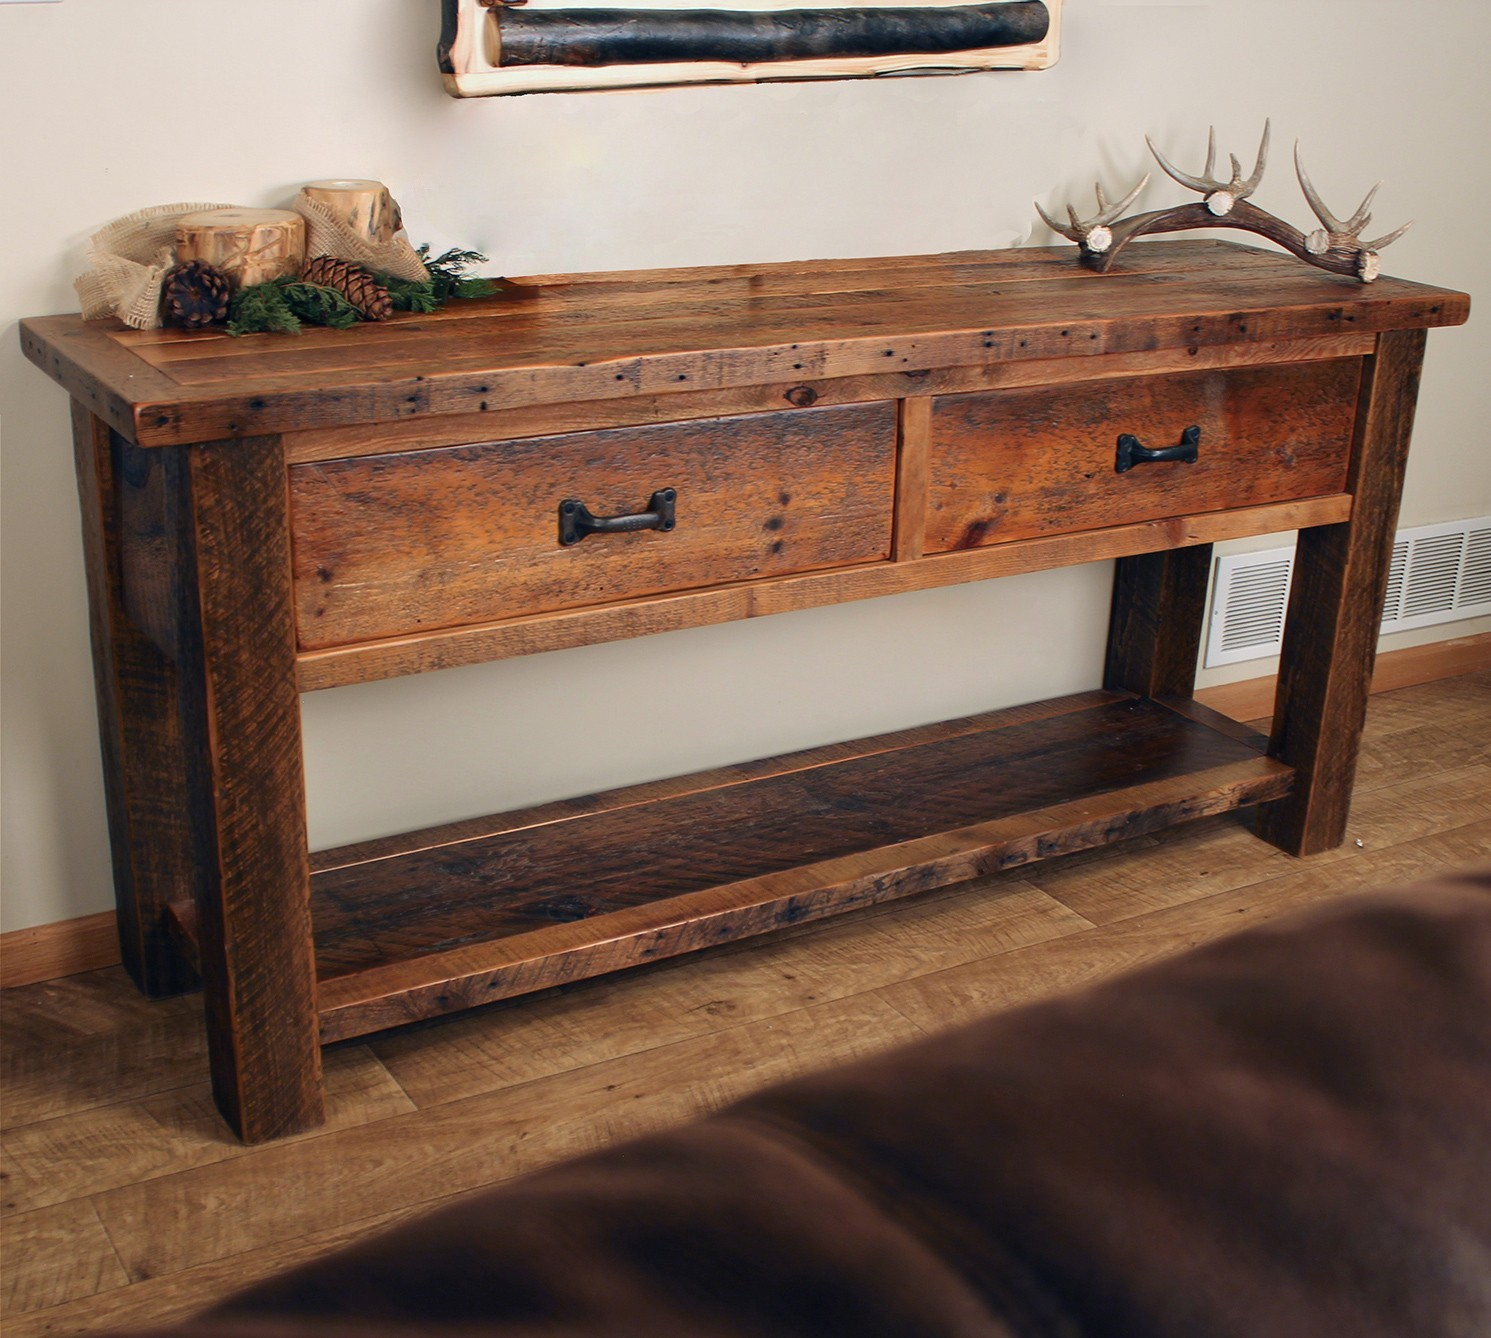 Sofa Table with Drawers Amazing Old Sawmill Timber Frame sofa Table with Drawers Collection